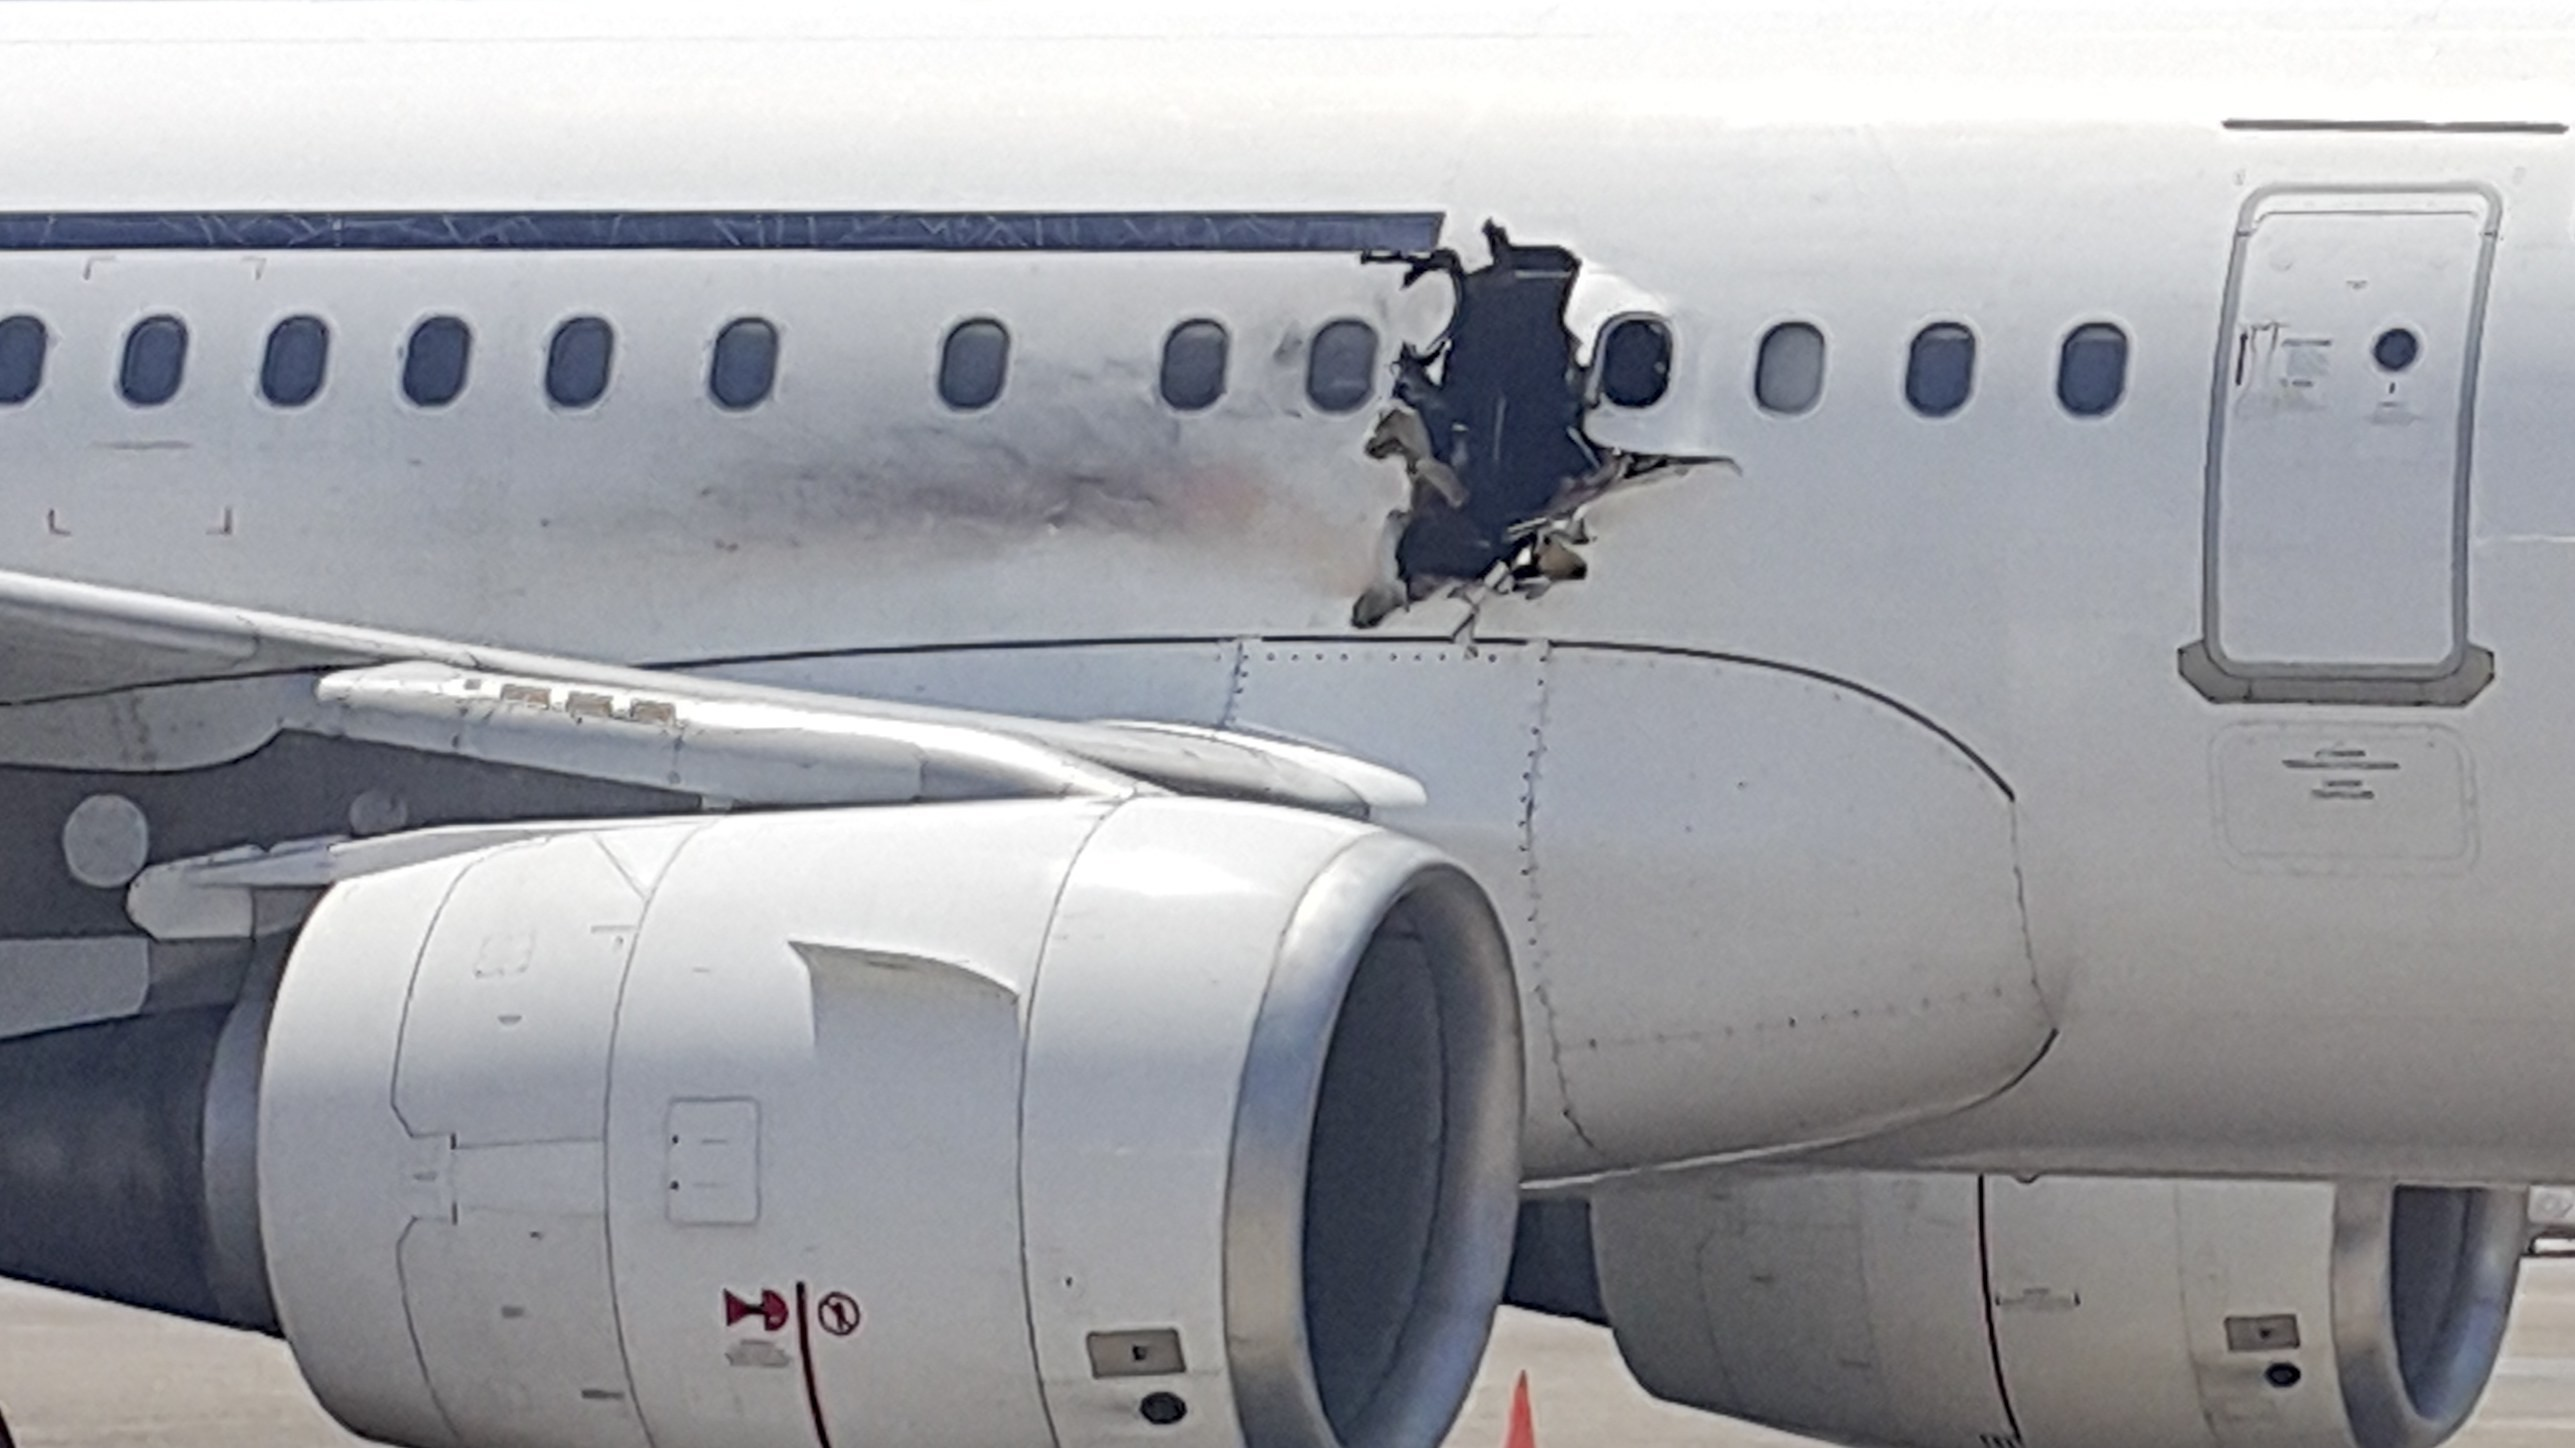 Al Shabaab Says It Carried Out Somalia Plane Attack